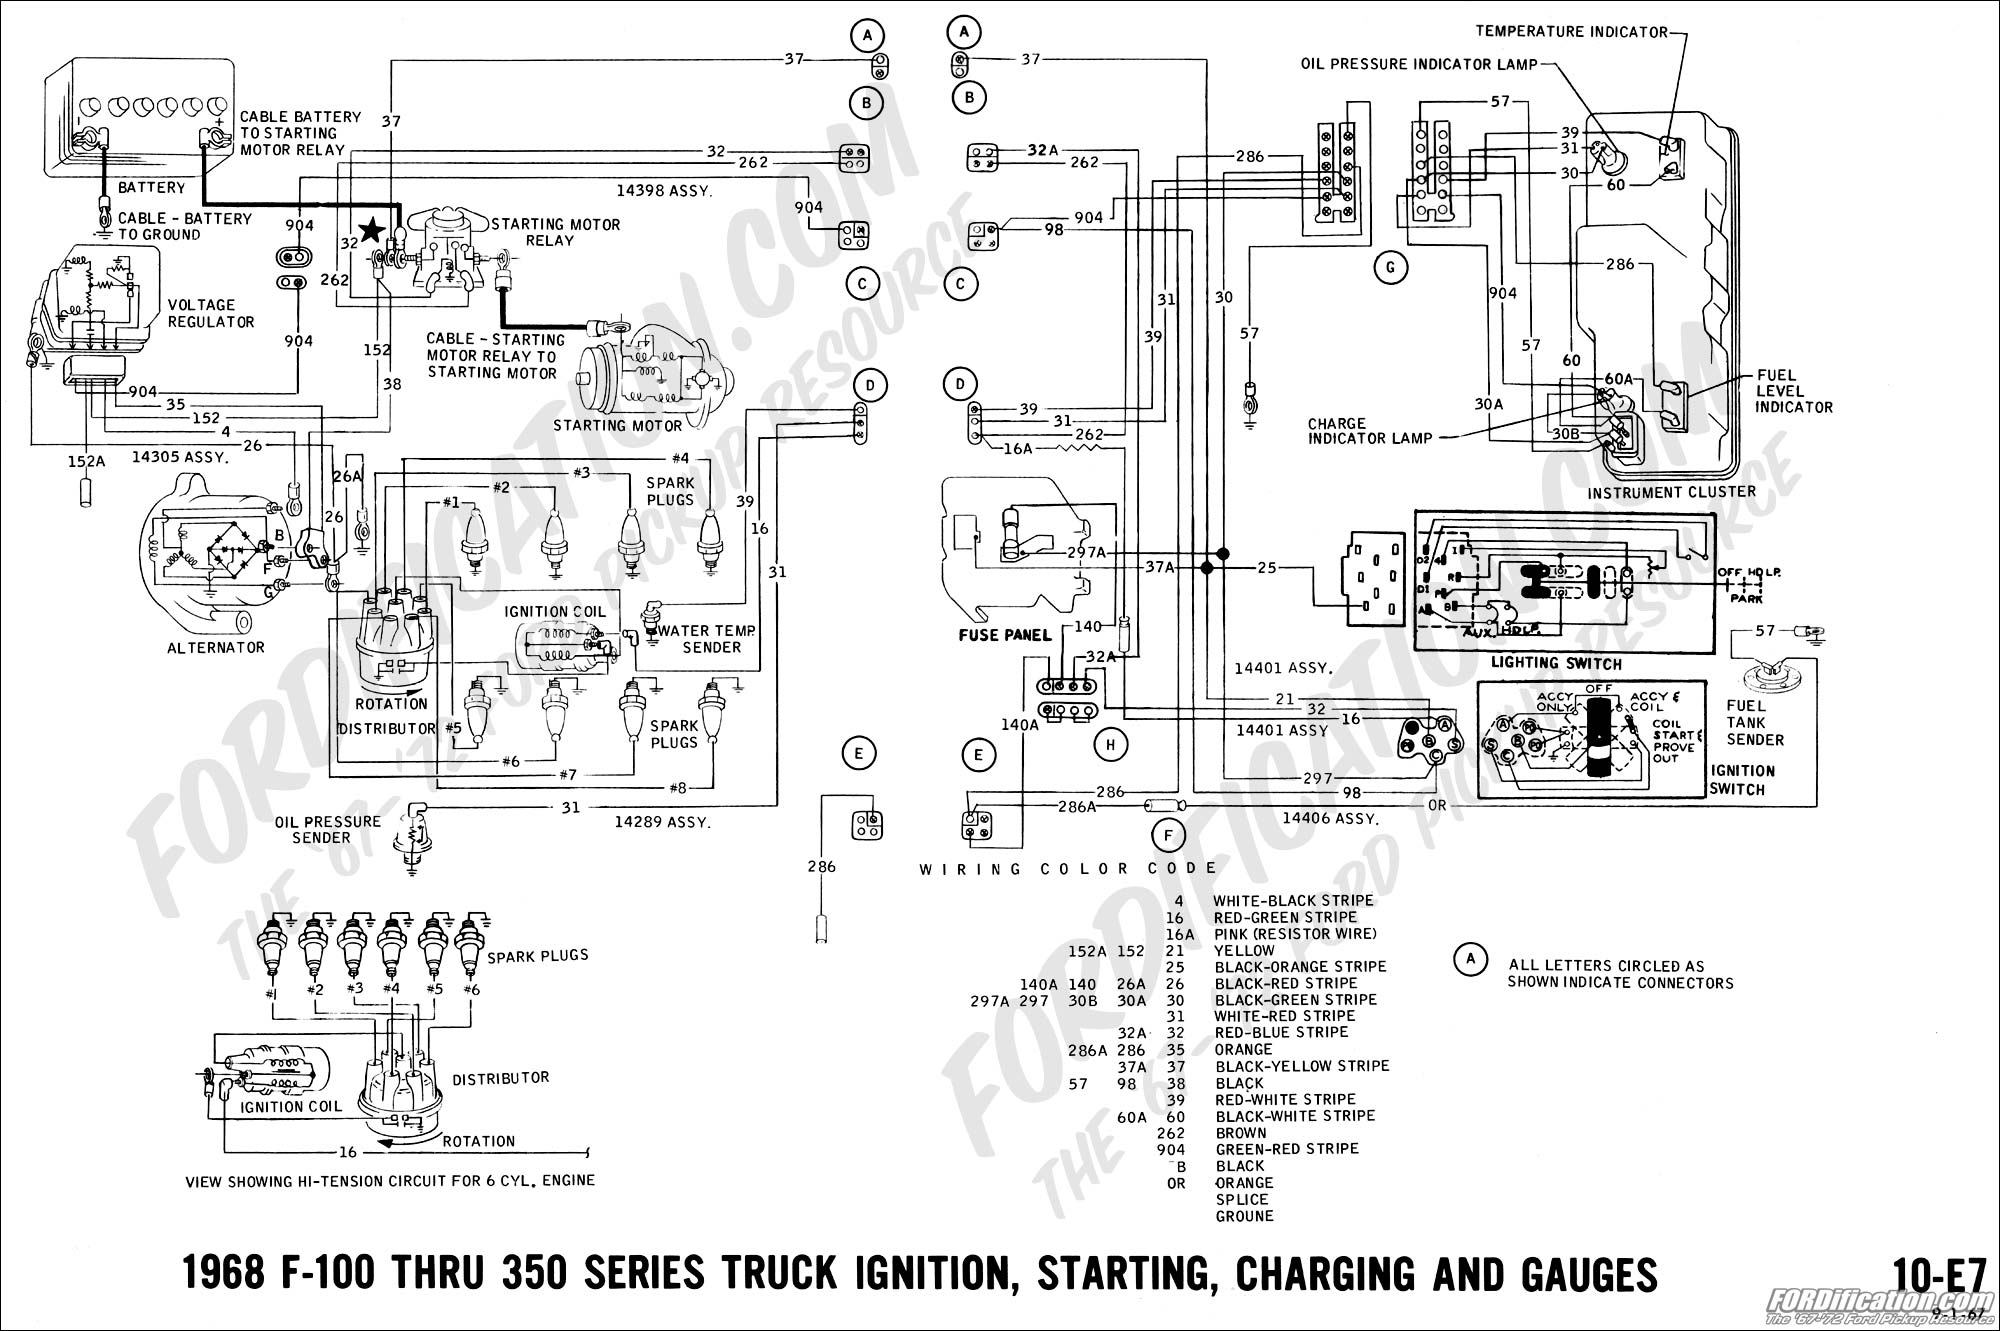 1967 Ford Ignition Coil Wiring Diagram Schematics Onan Truck Technical Drawings And Section H Cdi